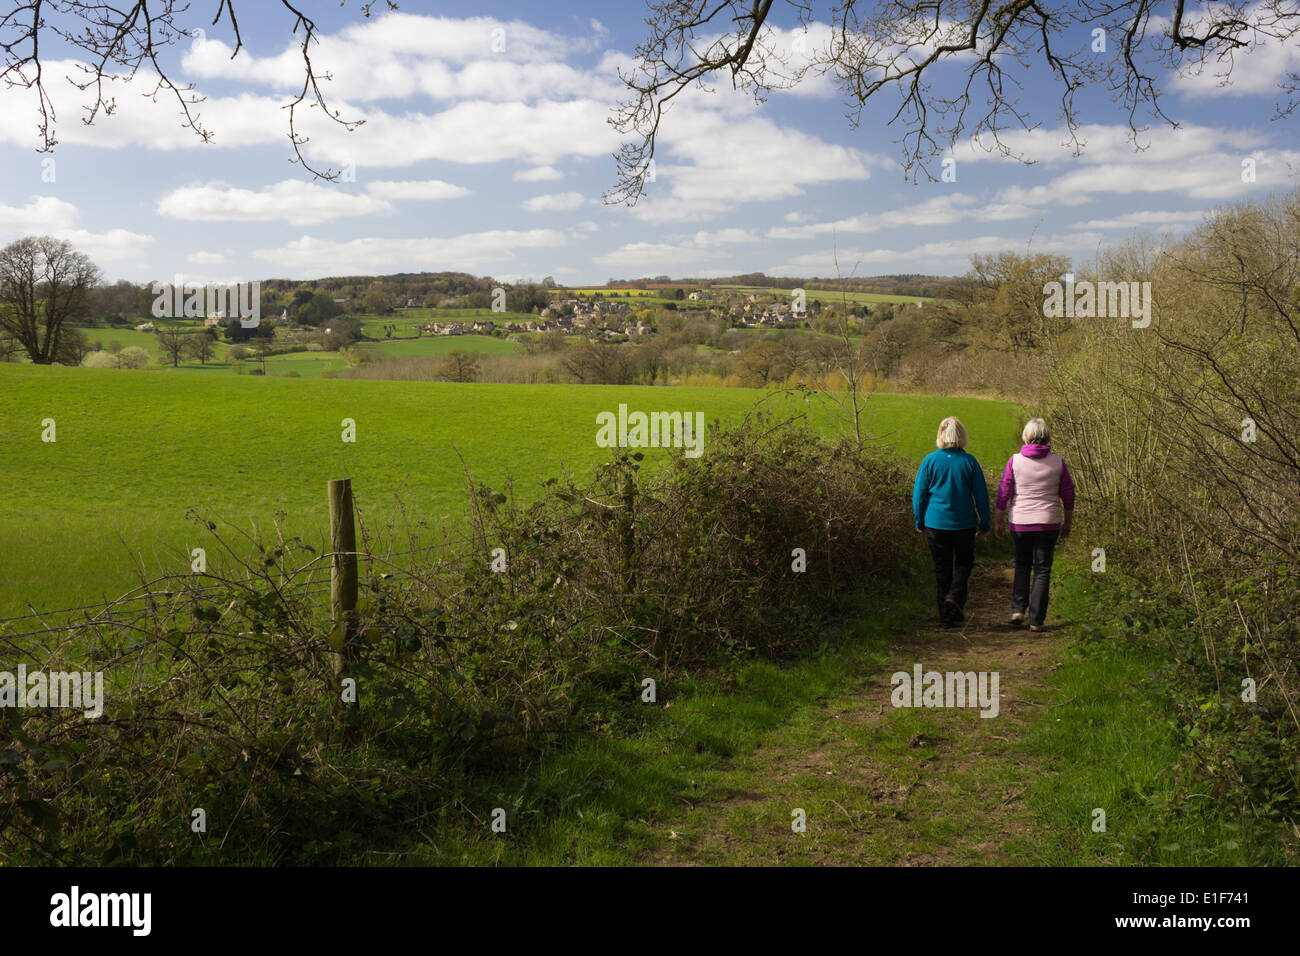 Walkers on the Monarchs Way footpath outside Longborough - Stock Image